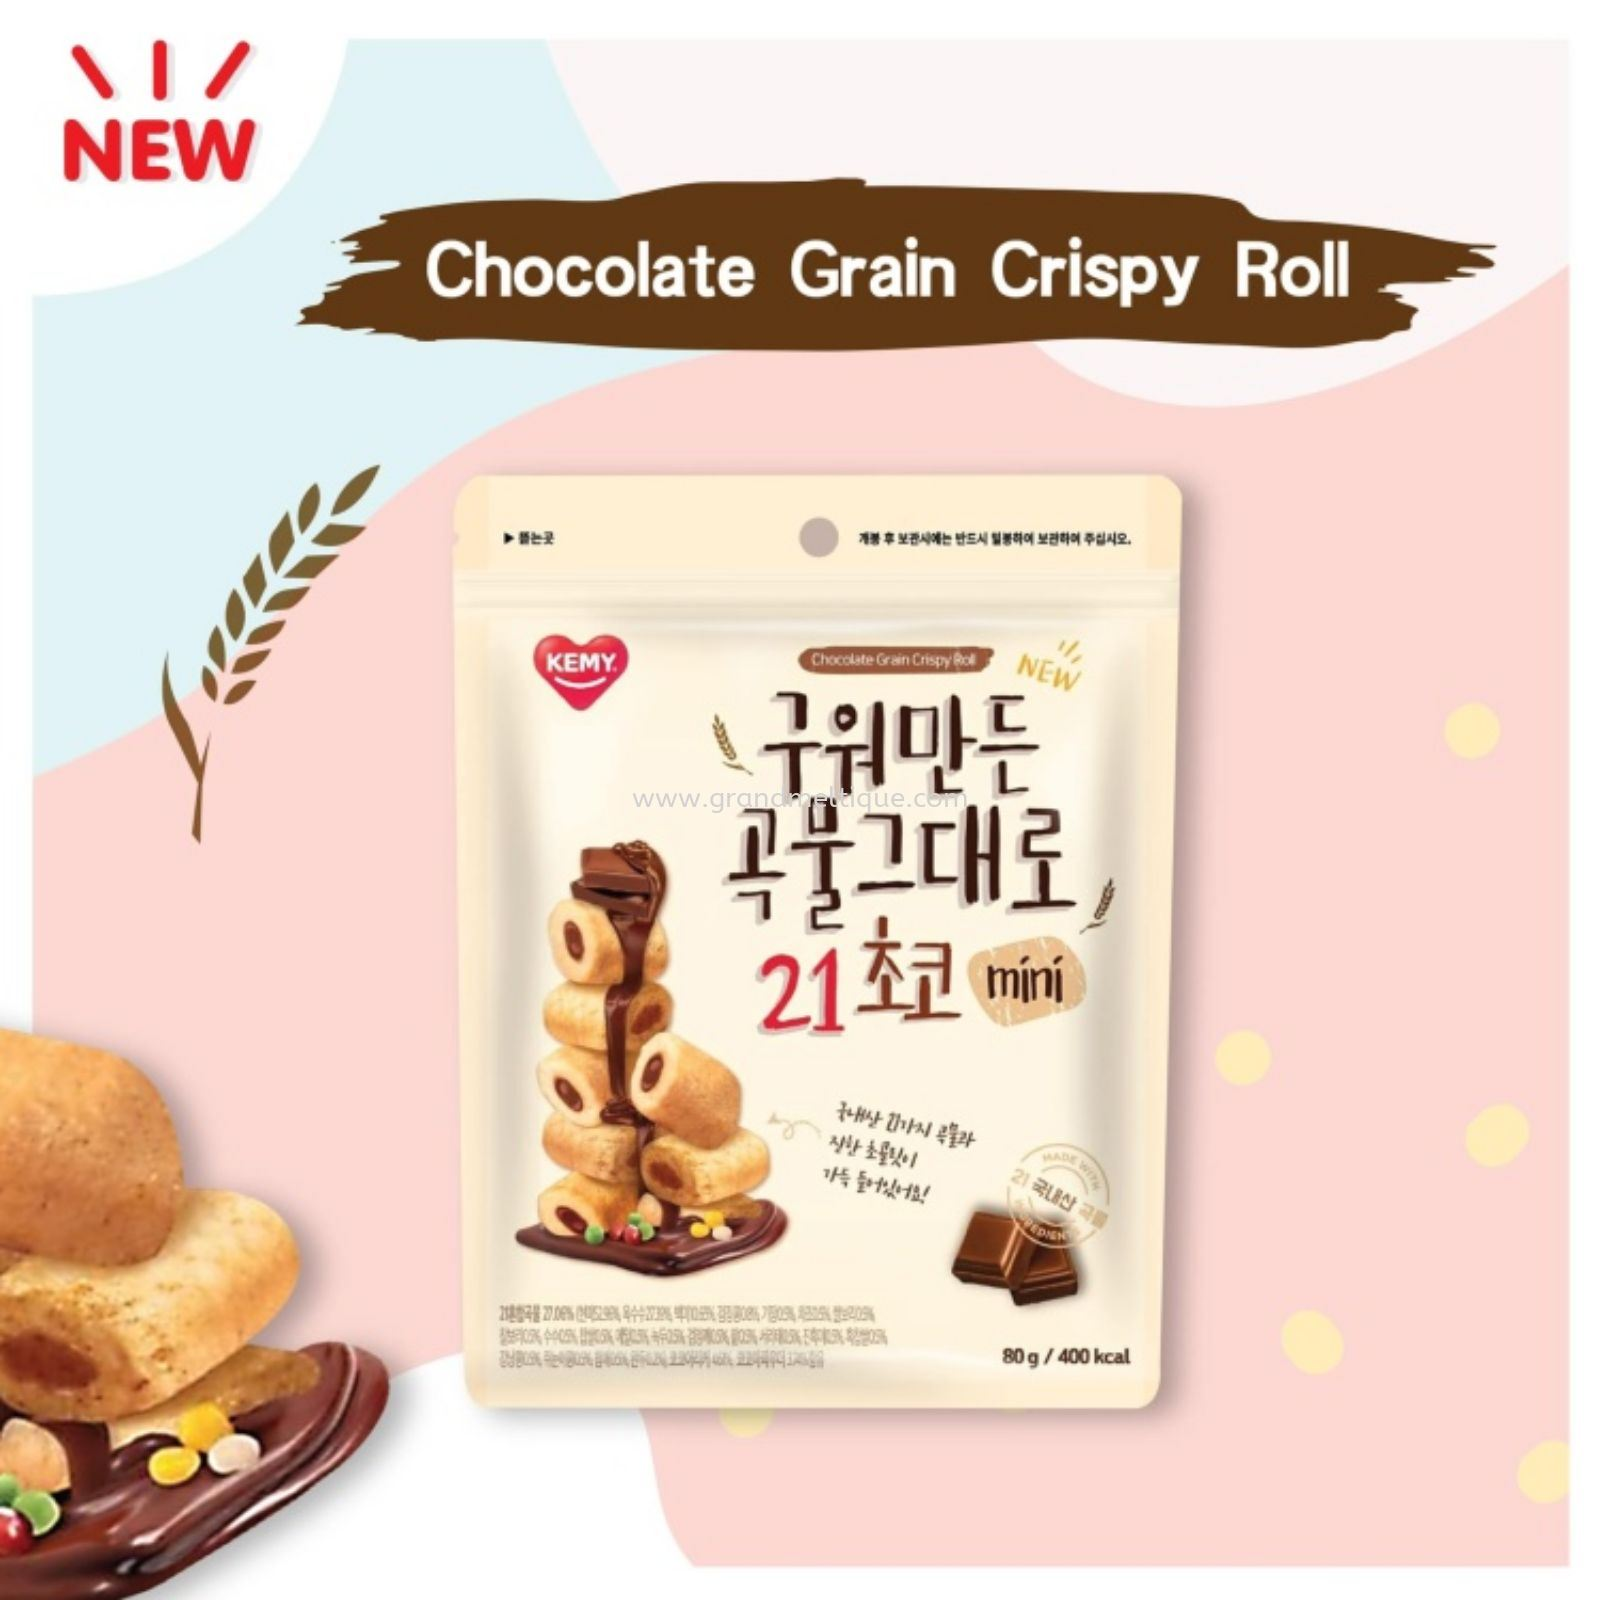 KEMY 21 GRAIN-CHOCOLATE MINI 巧克力味21谷物小饼干80G